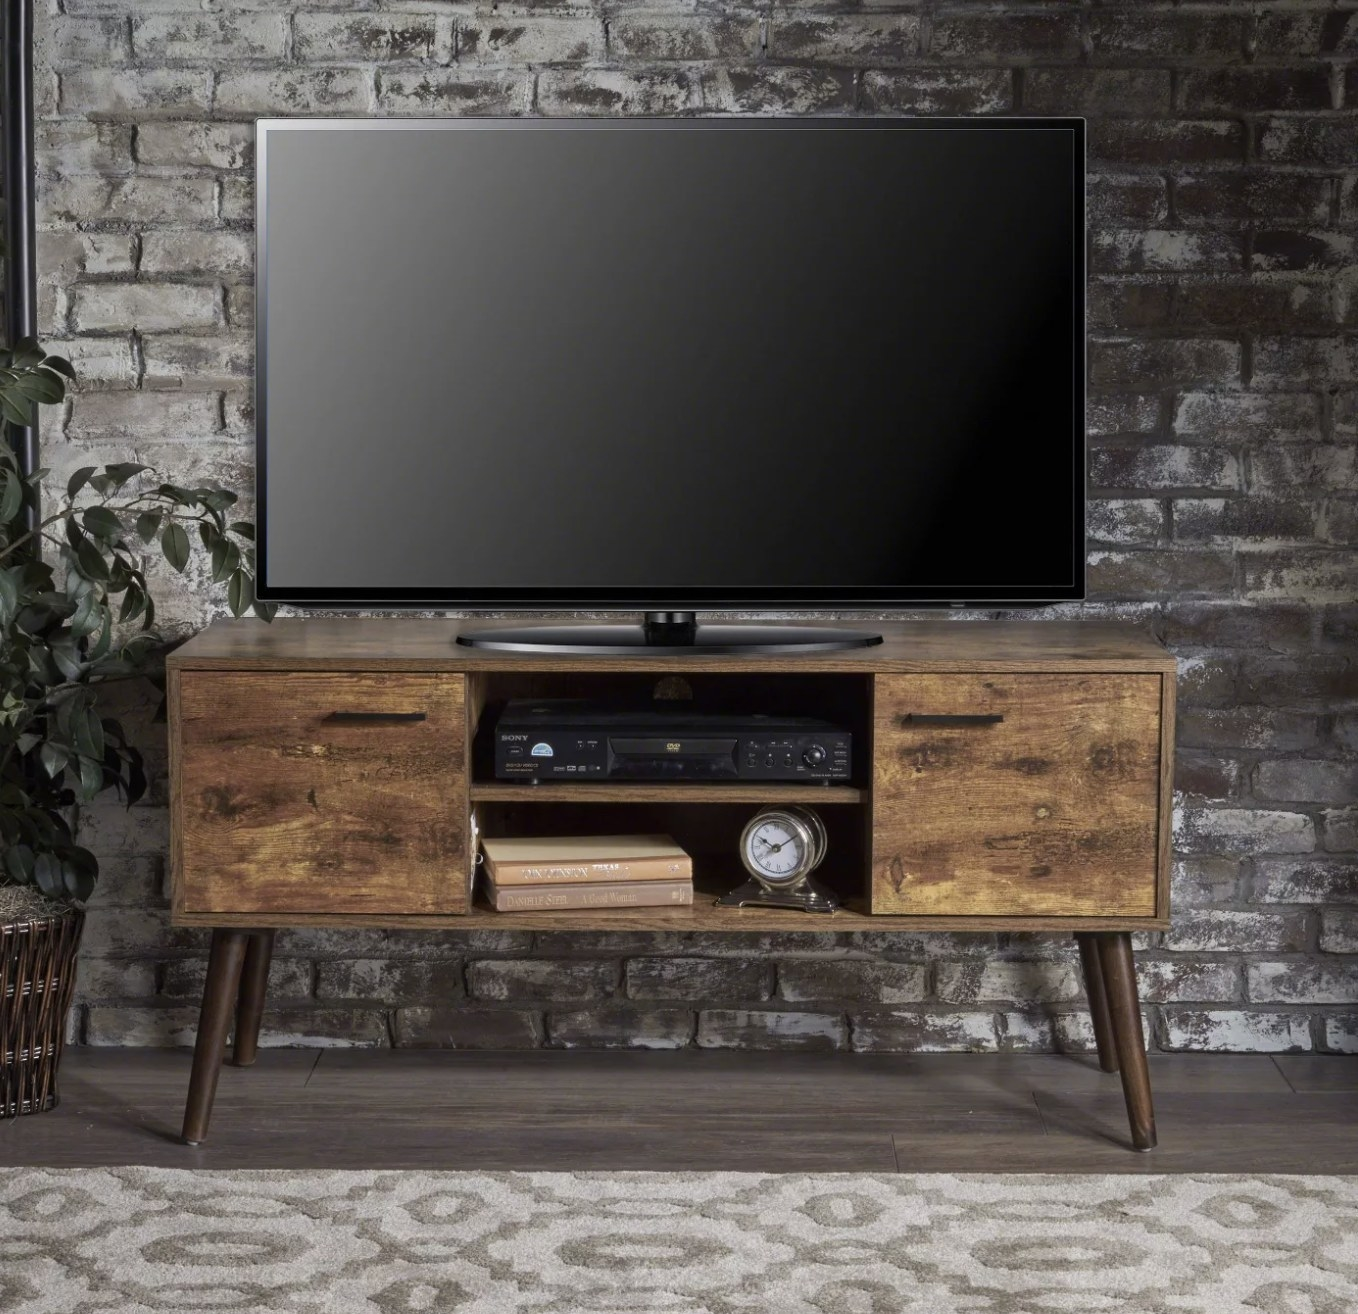 The wood entertainment stand